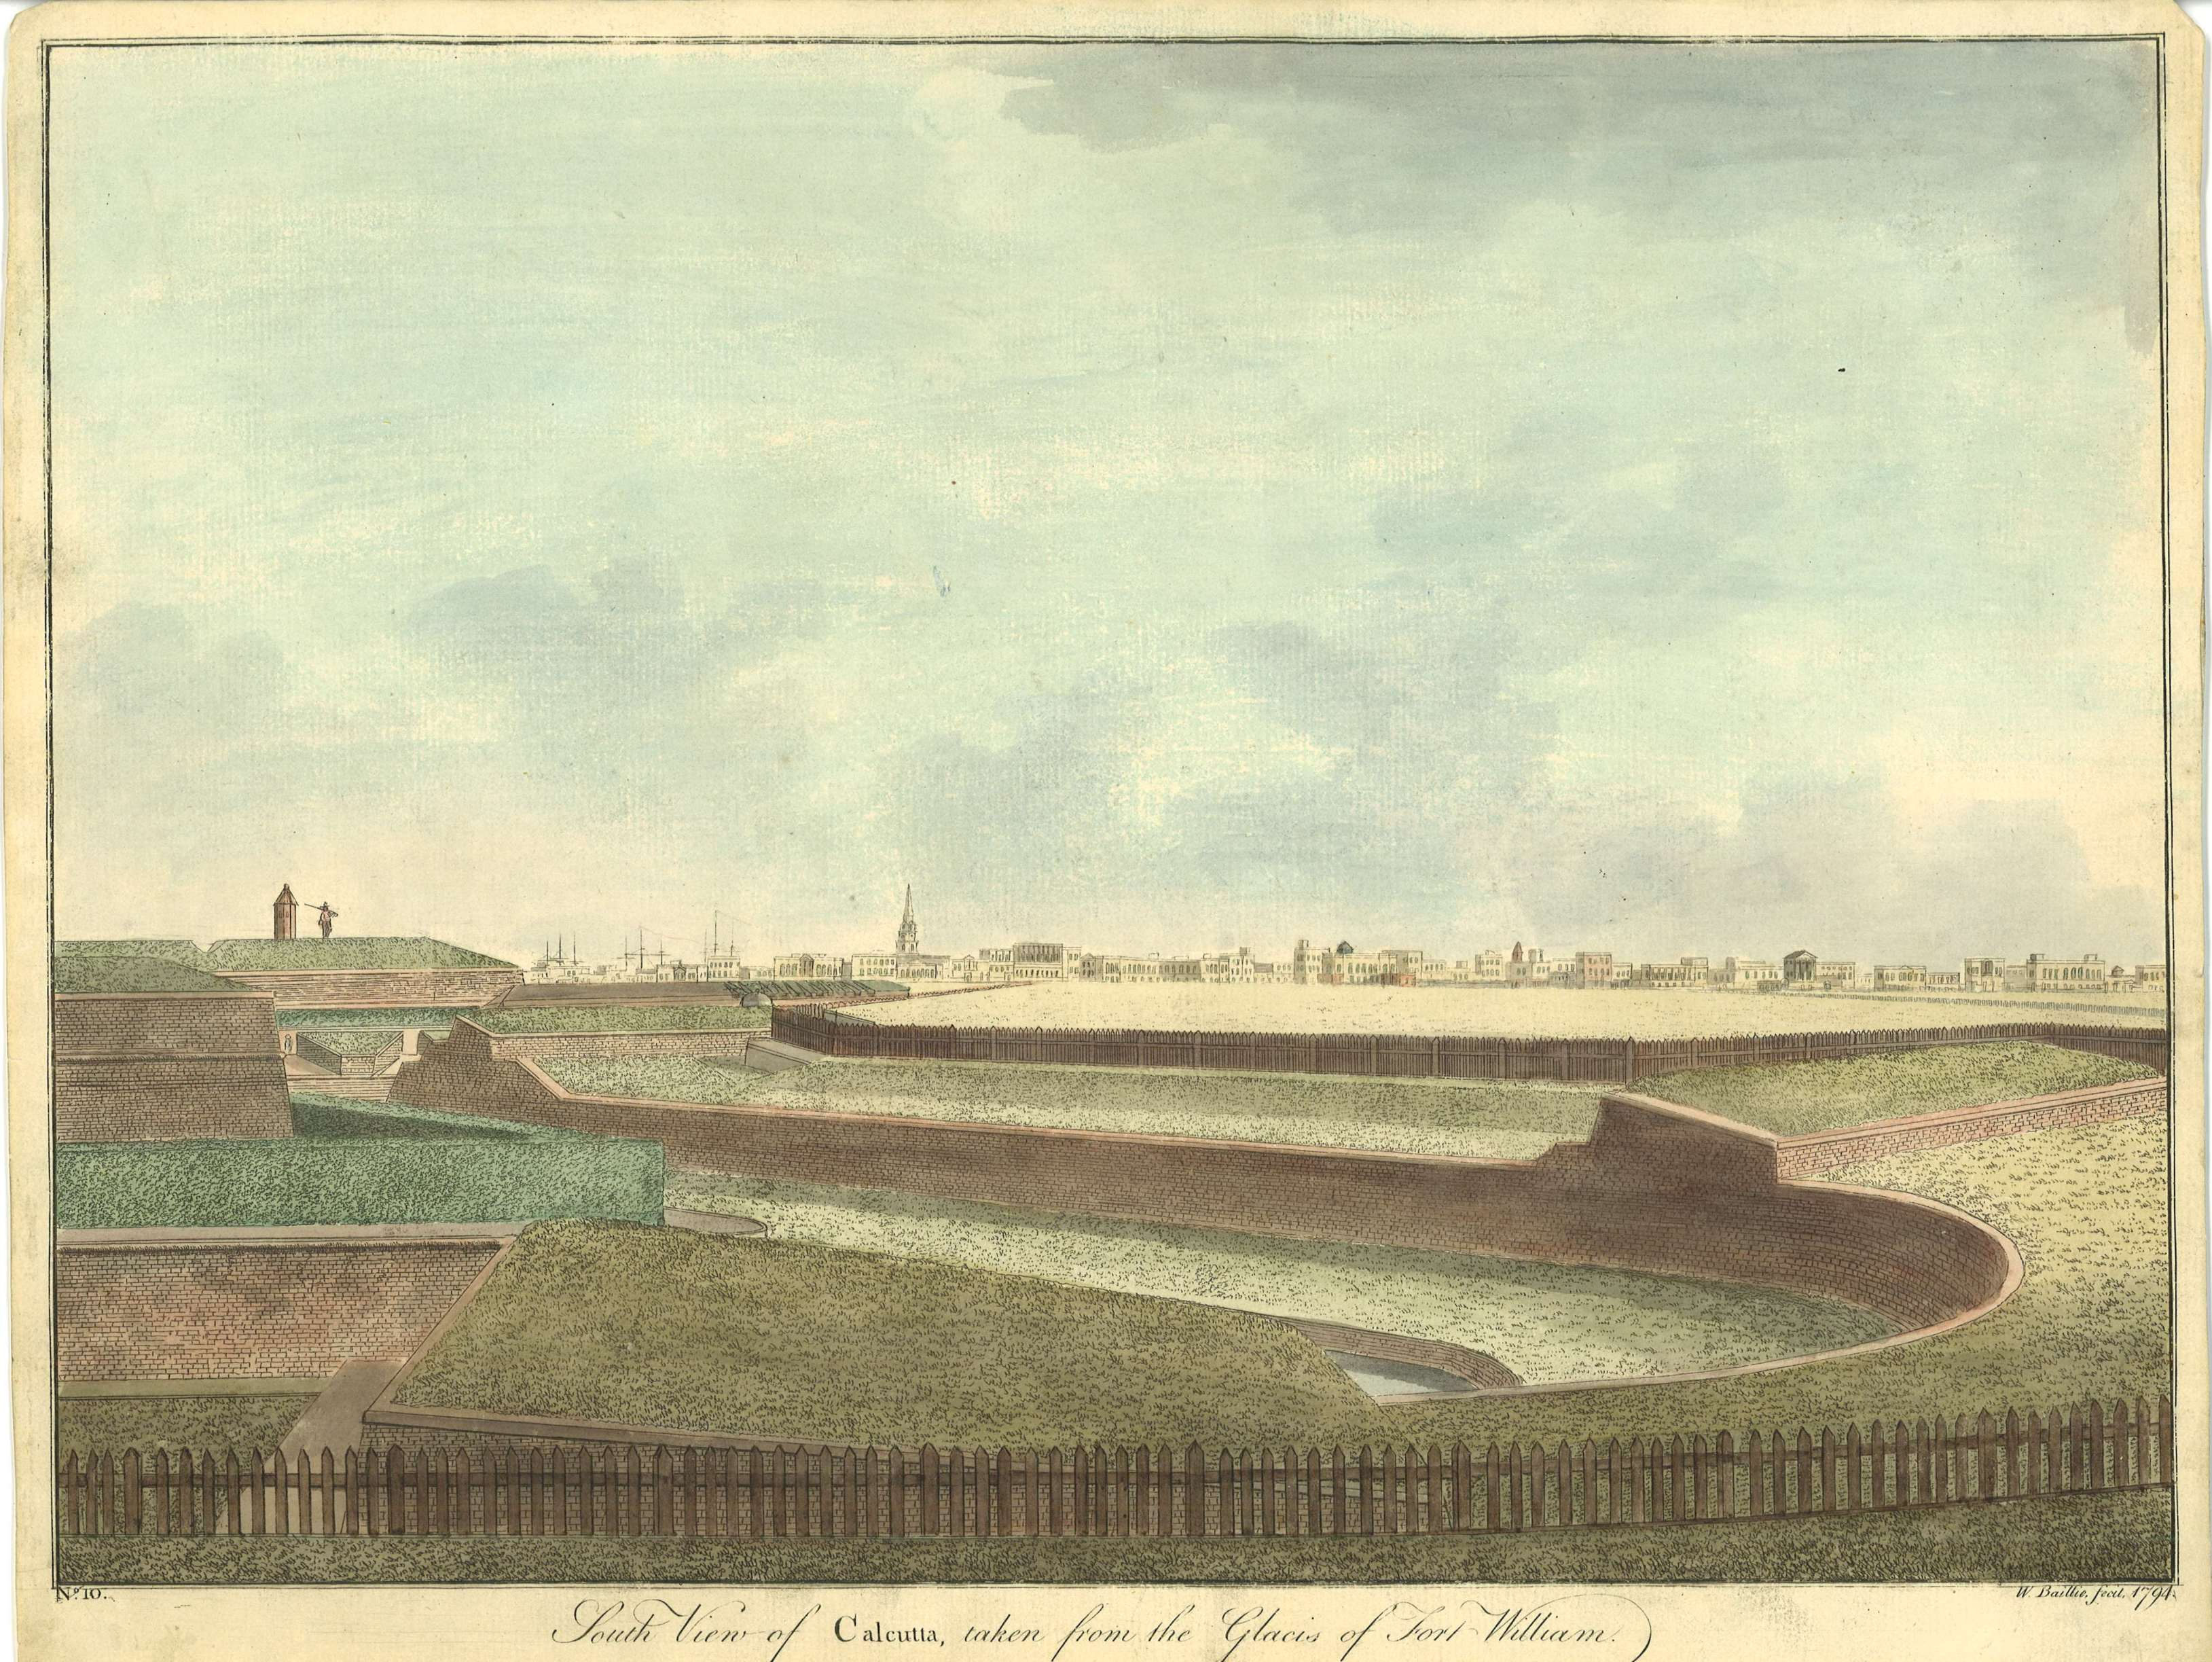 South view of Calcutta, taken from the Glacis of Fort William / W. Baillie